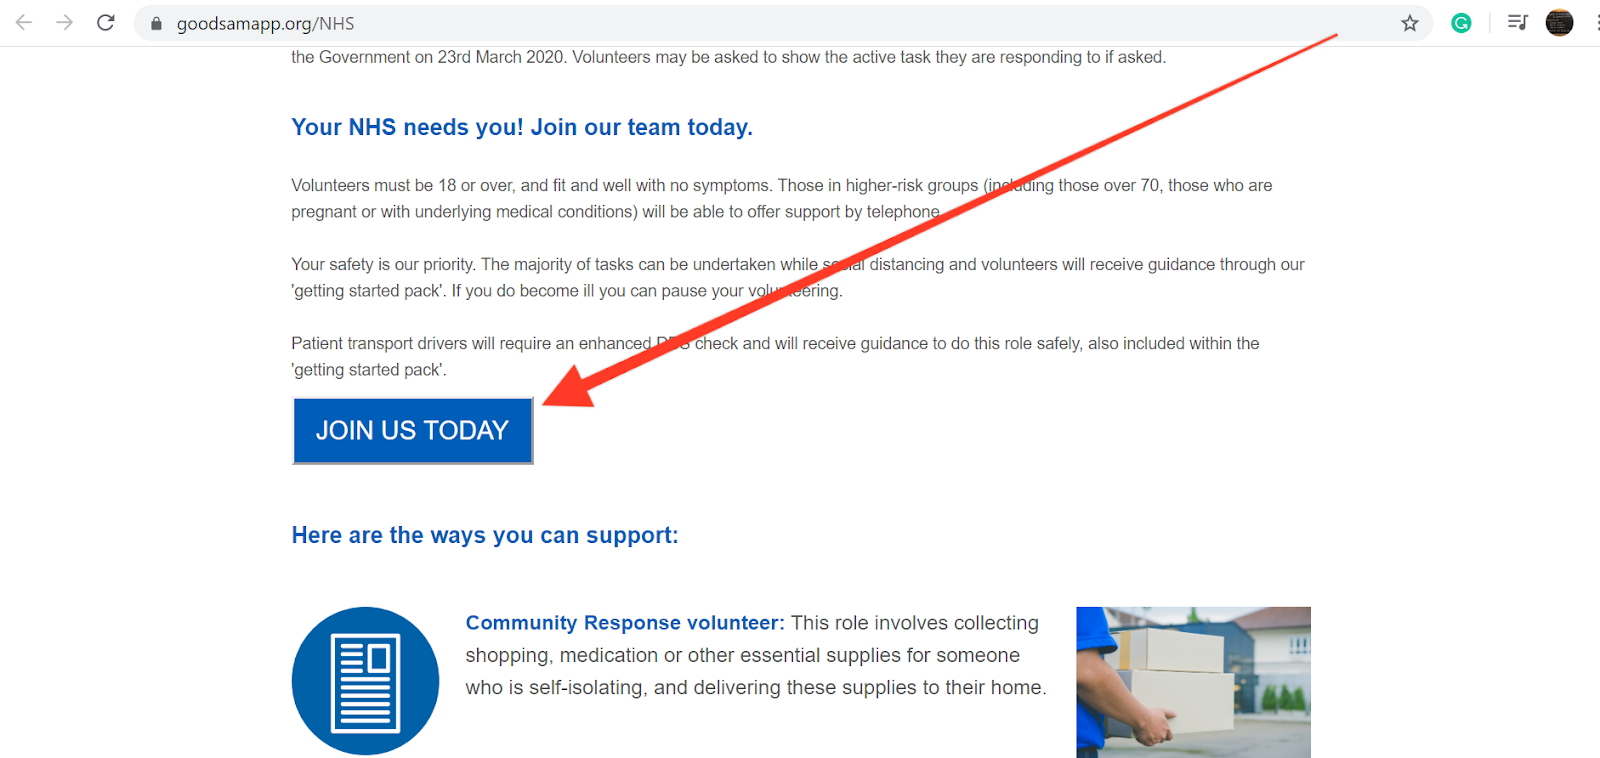 Screenshot of the NHS COVID-19 volunteering page showing the join us today button.